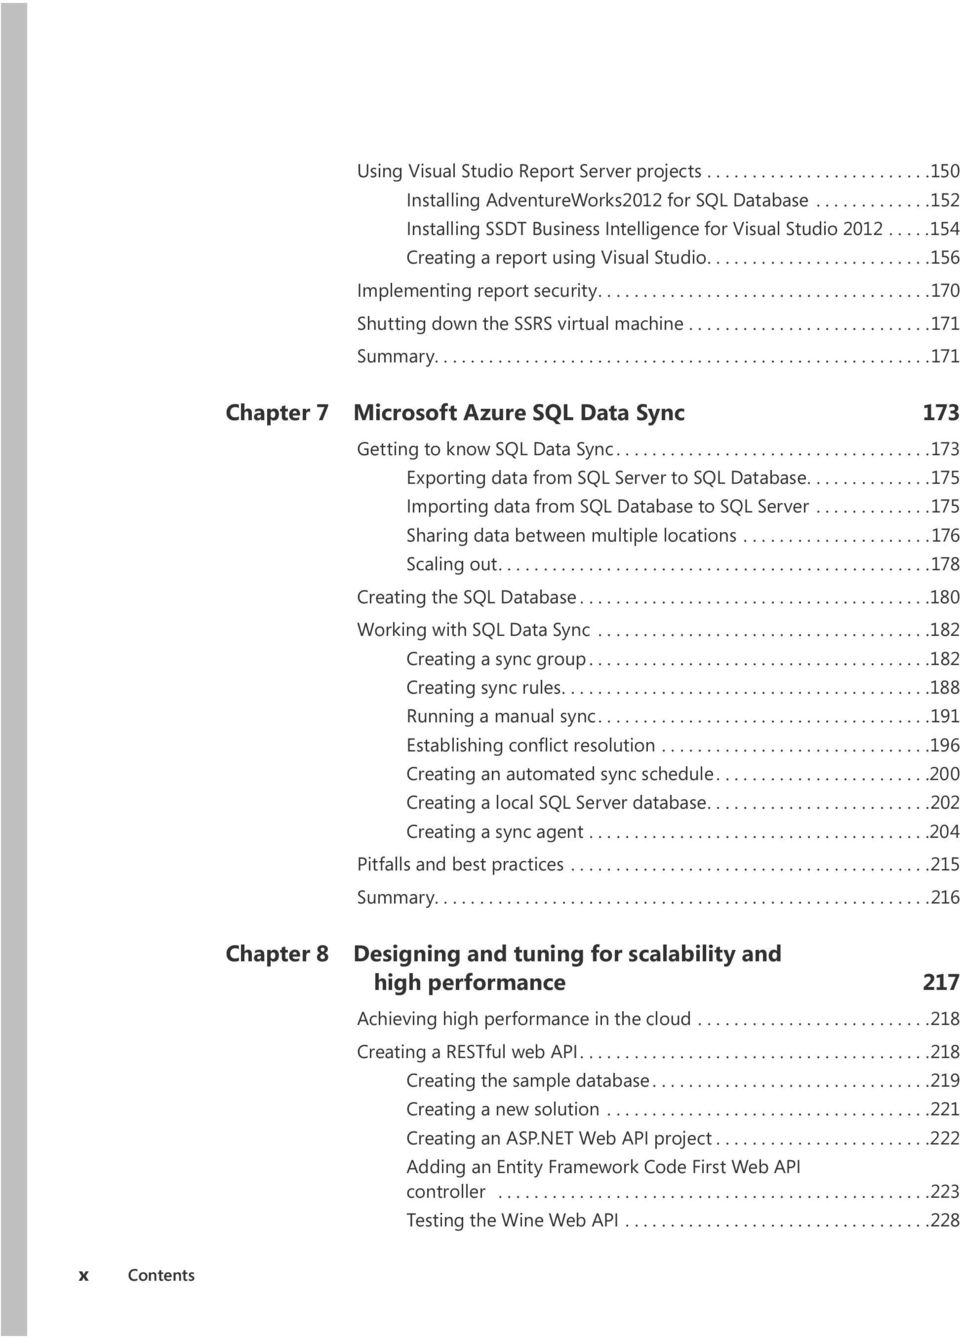 ......................................................171 Chapter 7 Microsoft Azure SQL Data Sync 173 Getting to know SQL Data Sync...173 Exporting data from SQL Server to SQL Database.